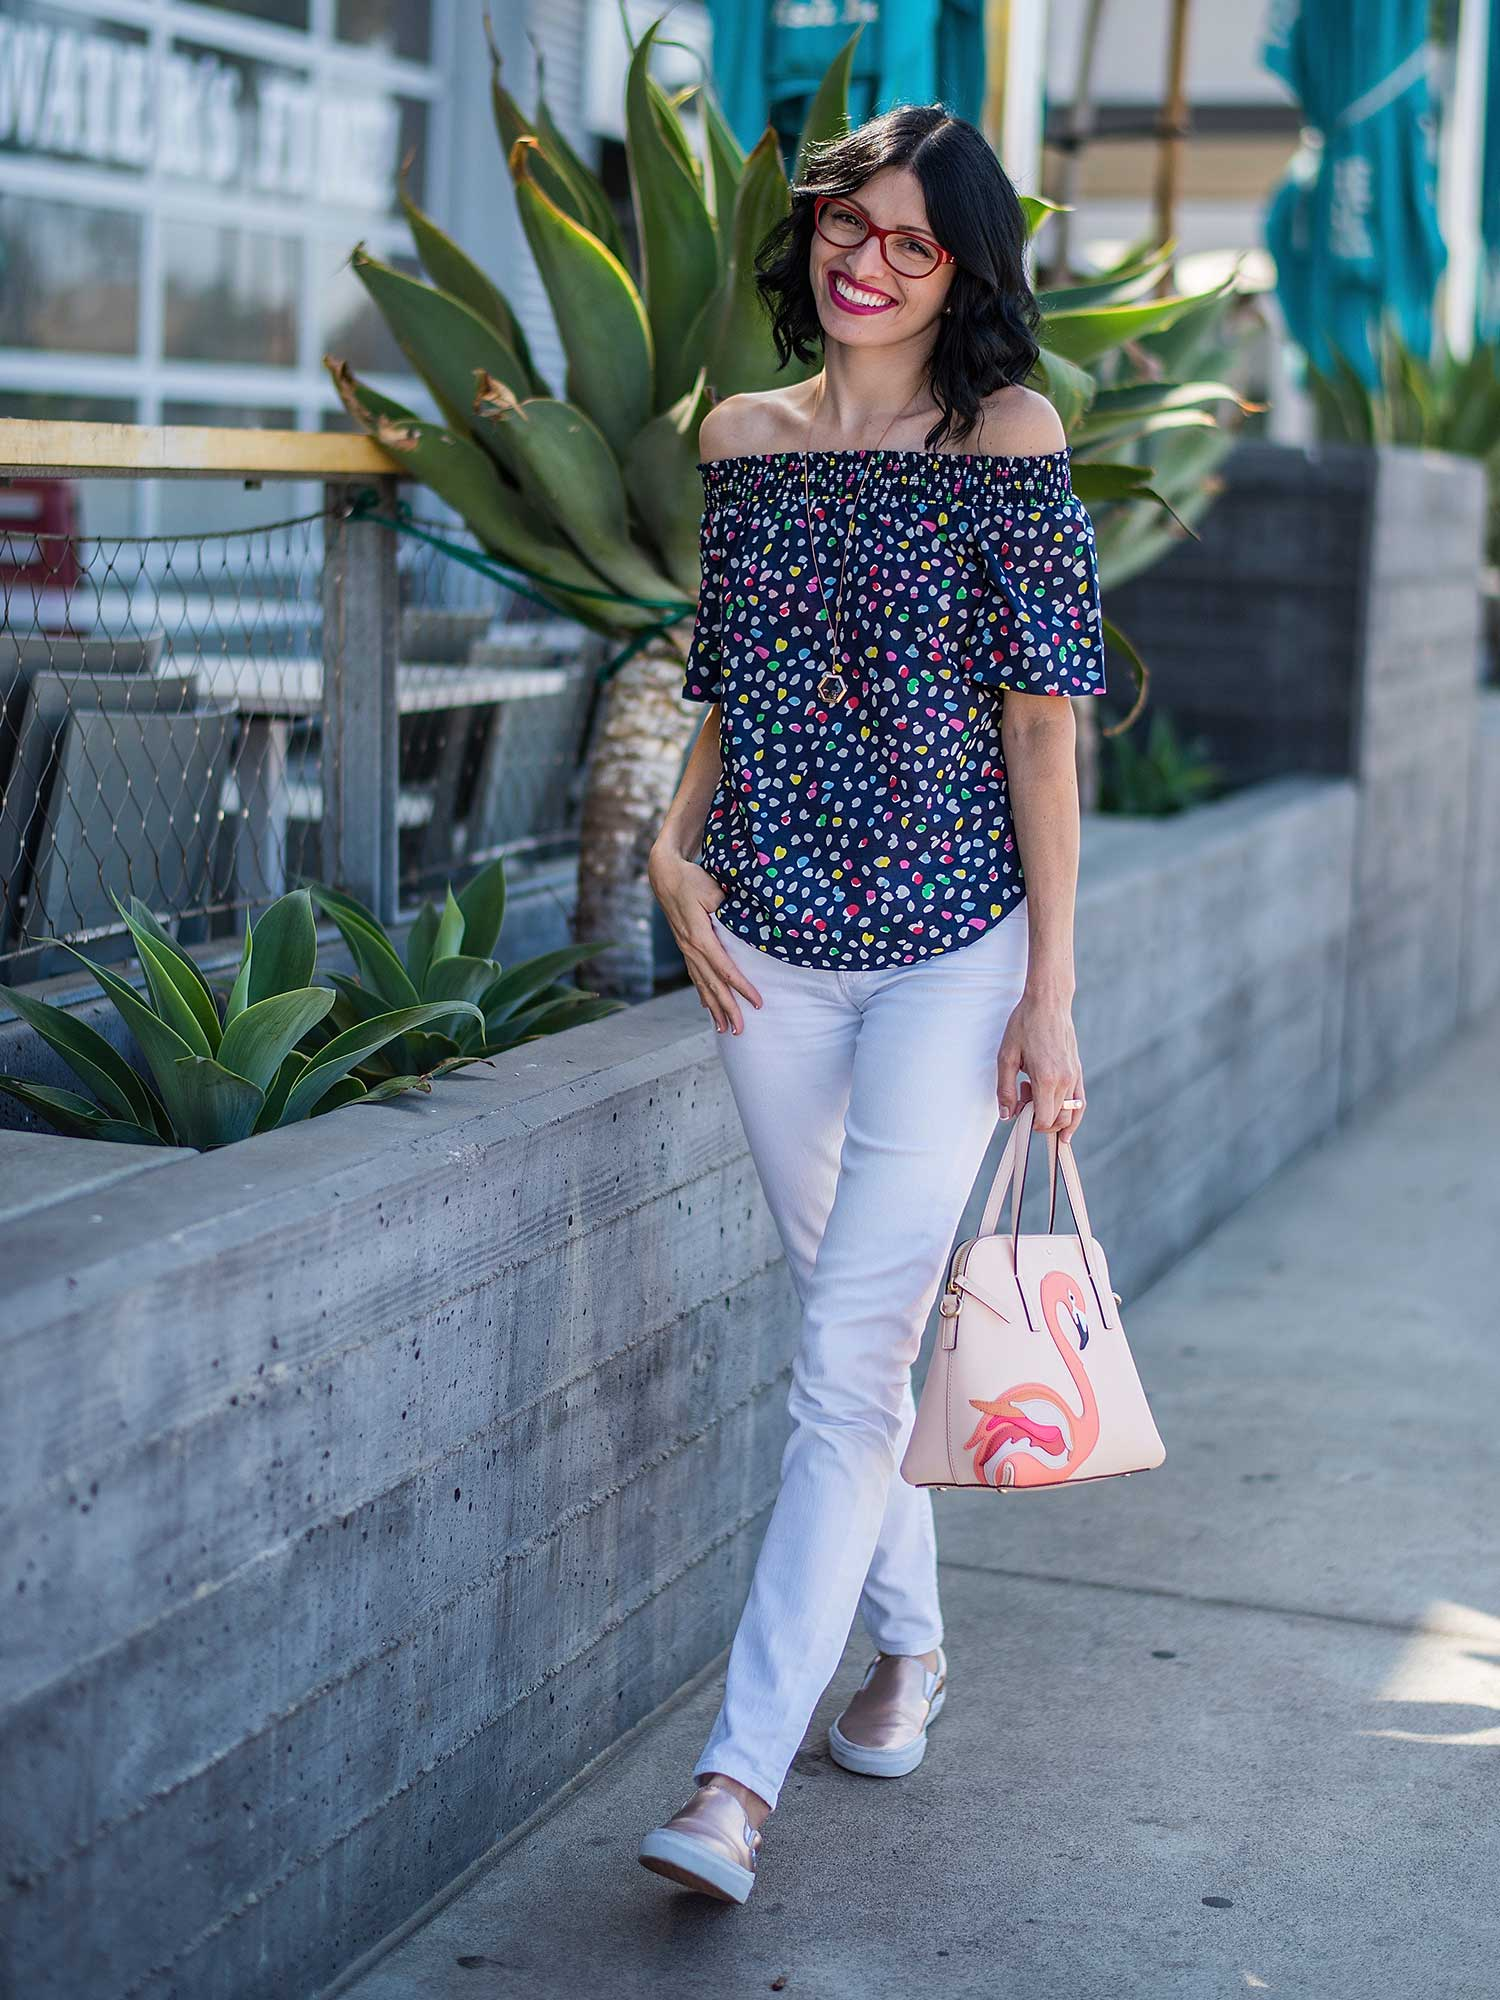 Jenna-Pilant-Lucky-Little-Mustardseed-How-To-Wear-An-Off-The-Shoulder-Top-7